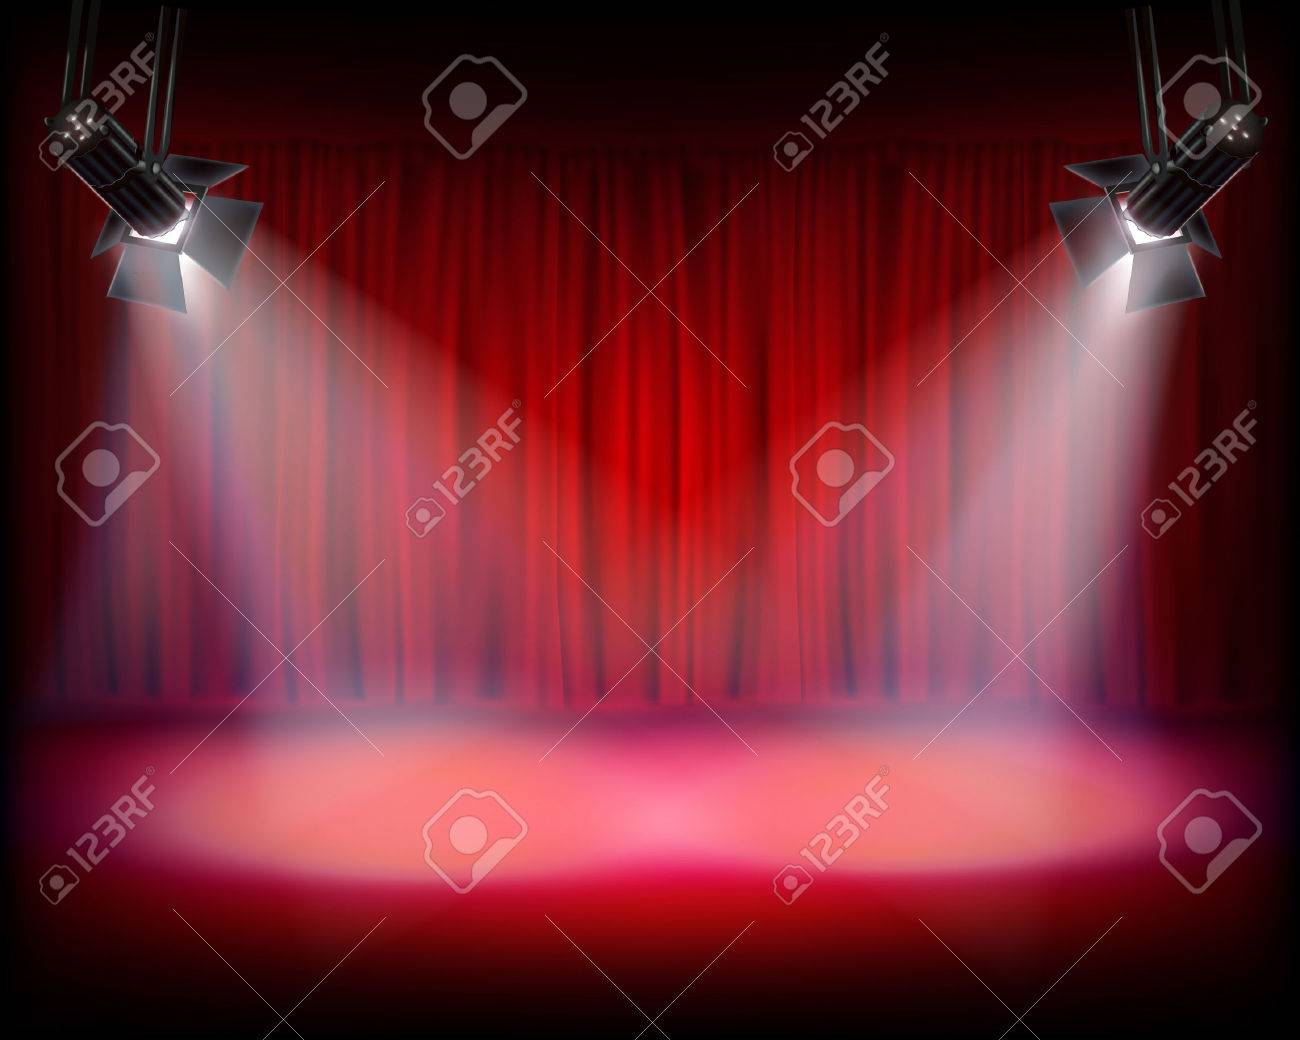 Stage with red curtain. Vector illustration. - 45935484